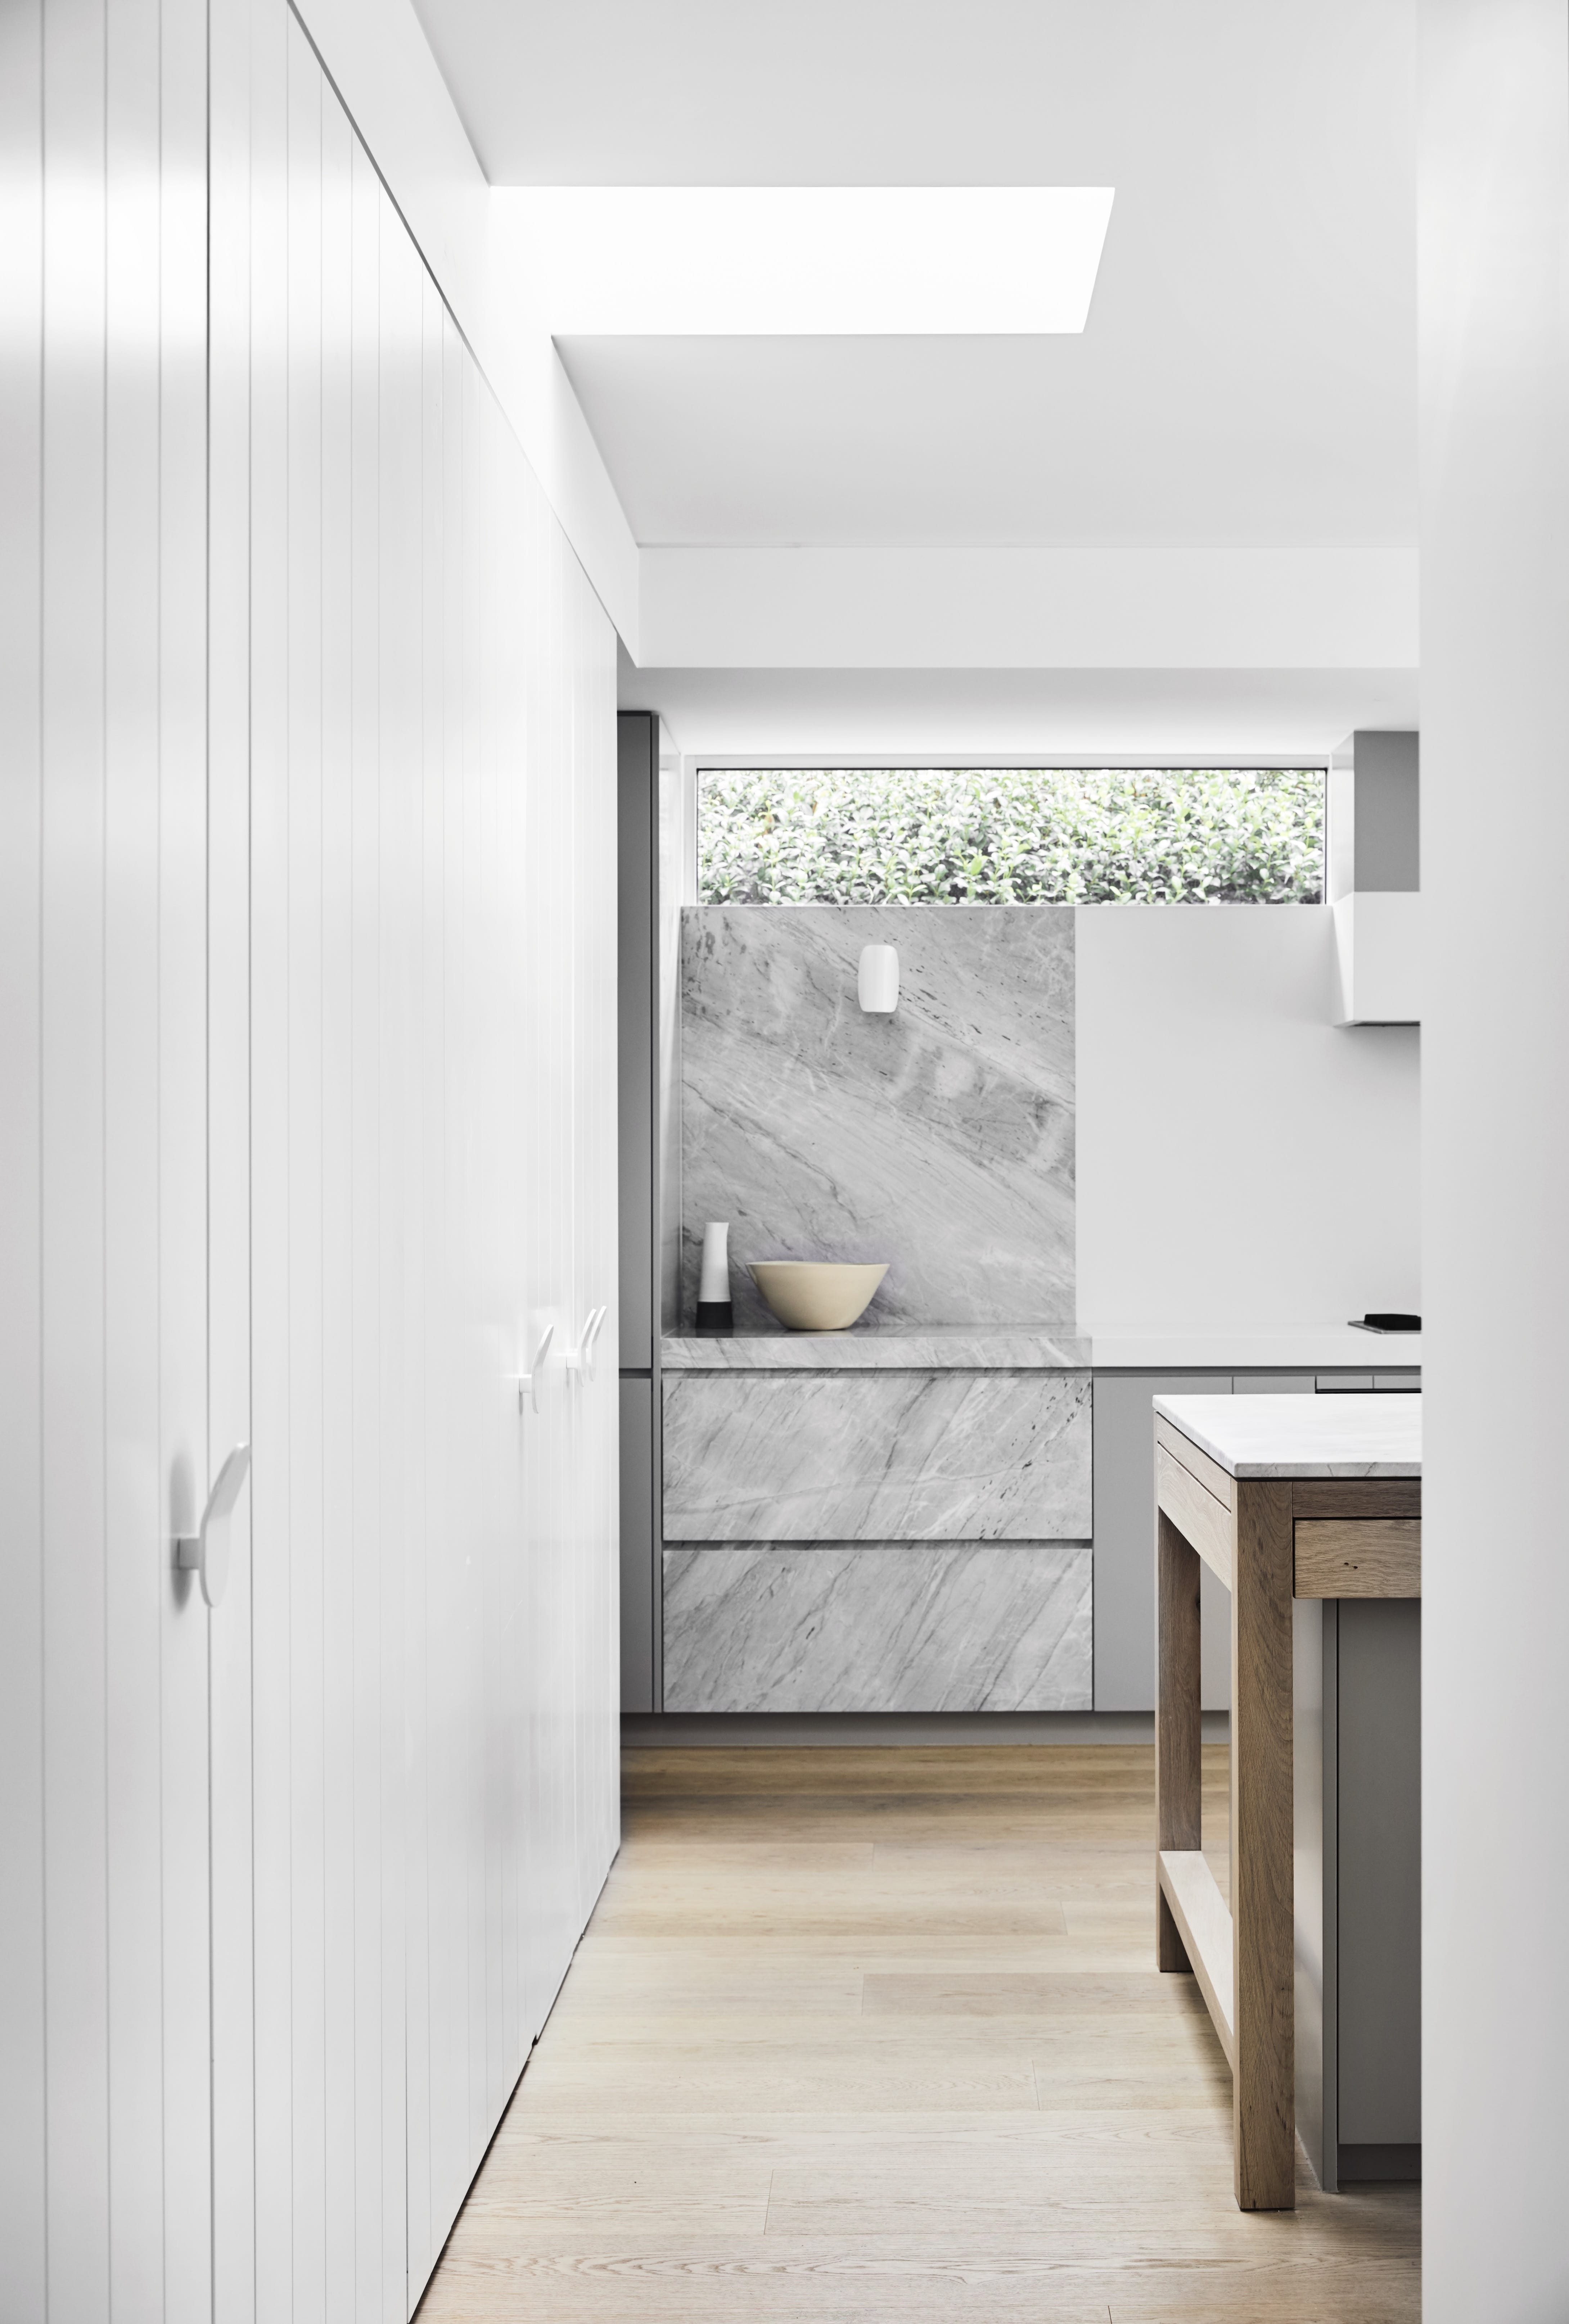 Overpowering Colours With A More Monochromatic Palette Producing A Calm And Respectful Space That Genera